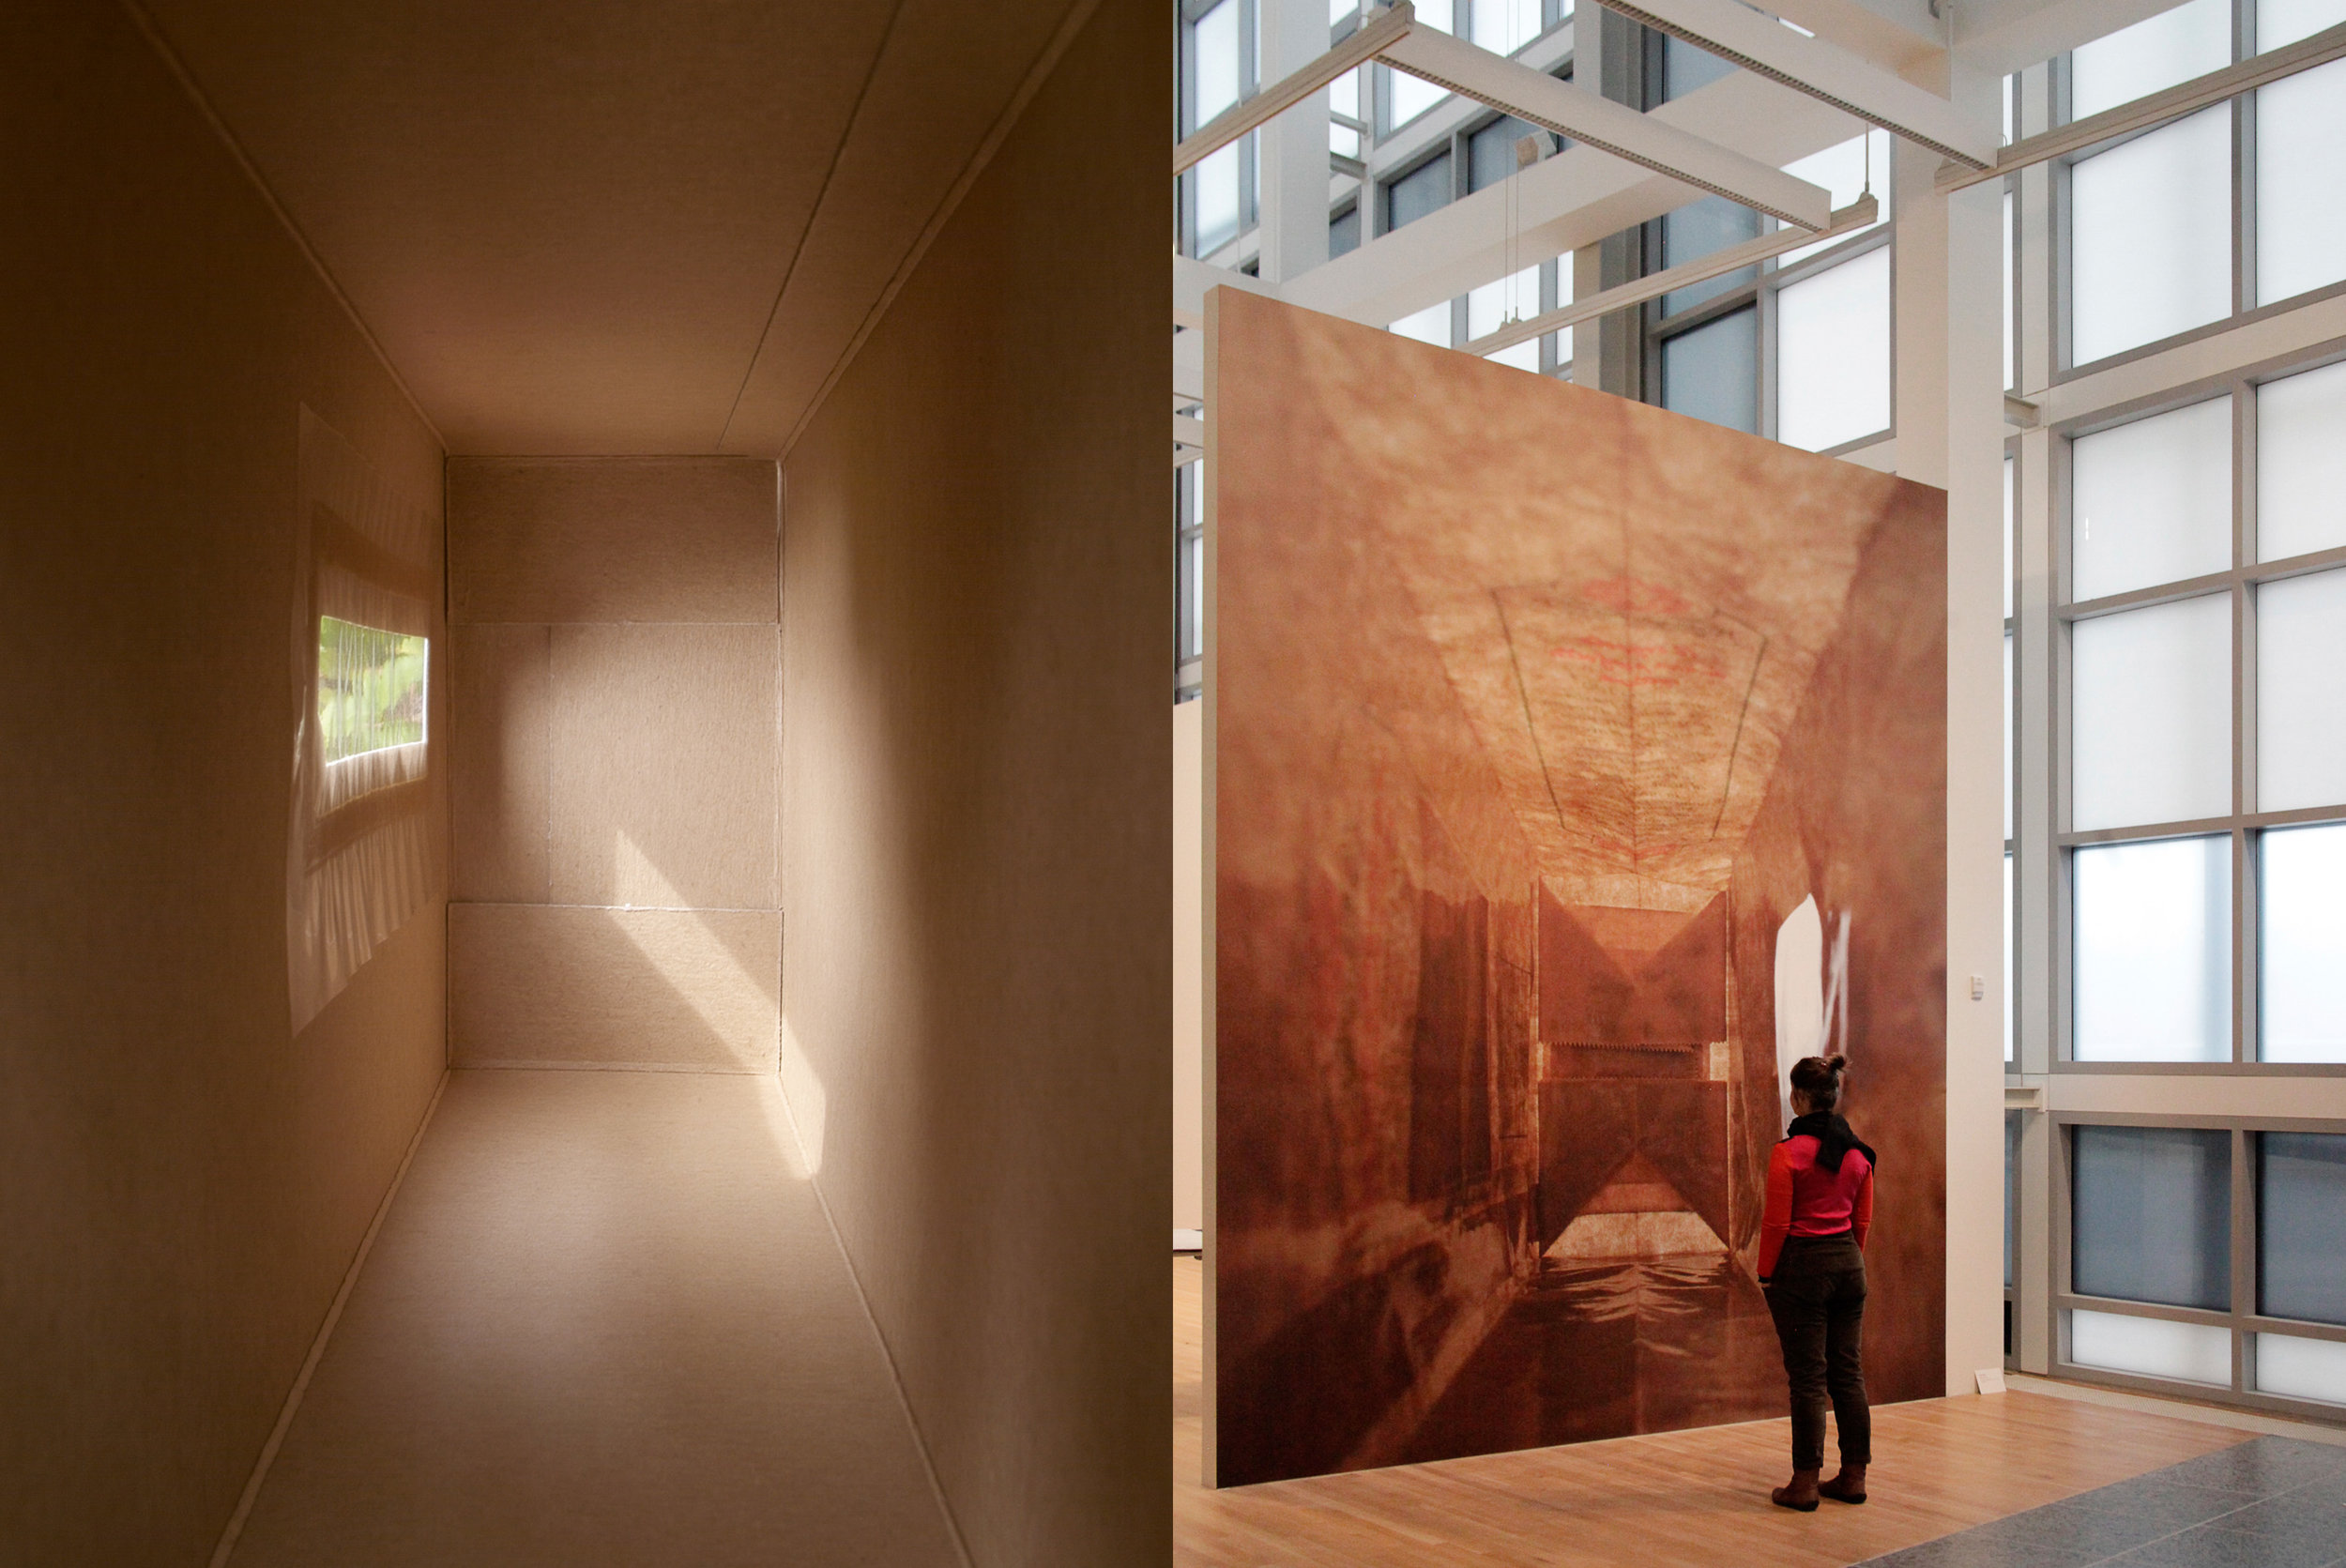 Spaghetti (Siena), 2004,  313.5 x 151 cm, 123-3/8 x 59-1/2 inches, pigment print on cotton paper, UV matte laminate, edition of 6 (left), Installation view,  Rusticchella,  2013,   Wexner Center for the Arts, Columbus, OH, 2014 180 x 144 inches; 457 x 366 cm (overall, 3-horizontal panels) 60 x 144 inches; 152.5 x 366 cm (each panel), pigment print on cotton paper, UV matte laminate, edition of 6 (right)